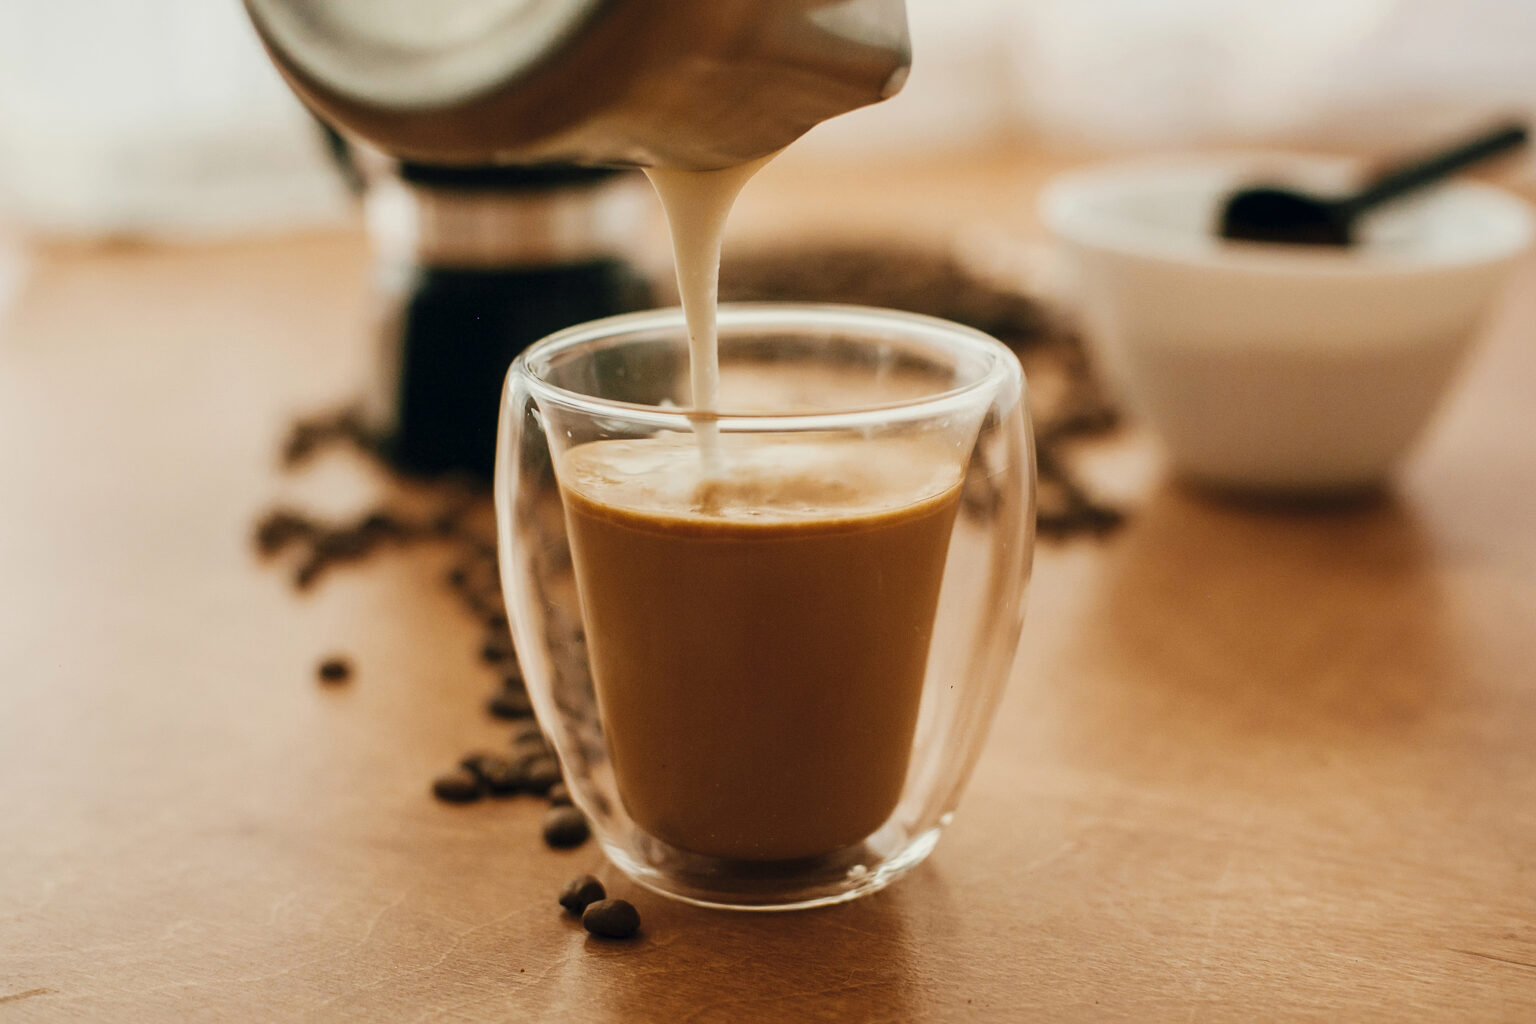 Pouring milk into coffee in glass cup on background of roasted coffee beans, grounded coffee, geyser coffee maker on wooden table. Making latte or cappuccino